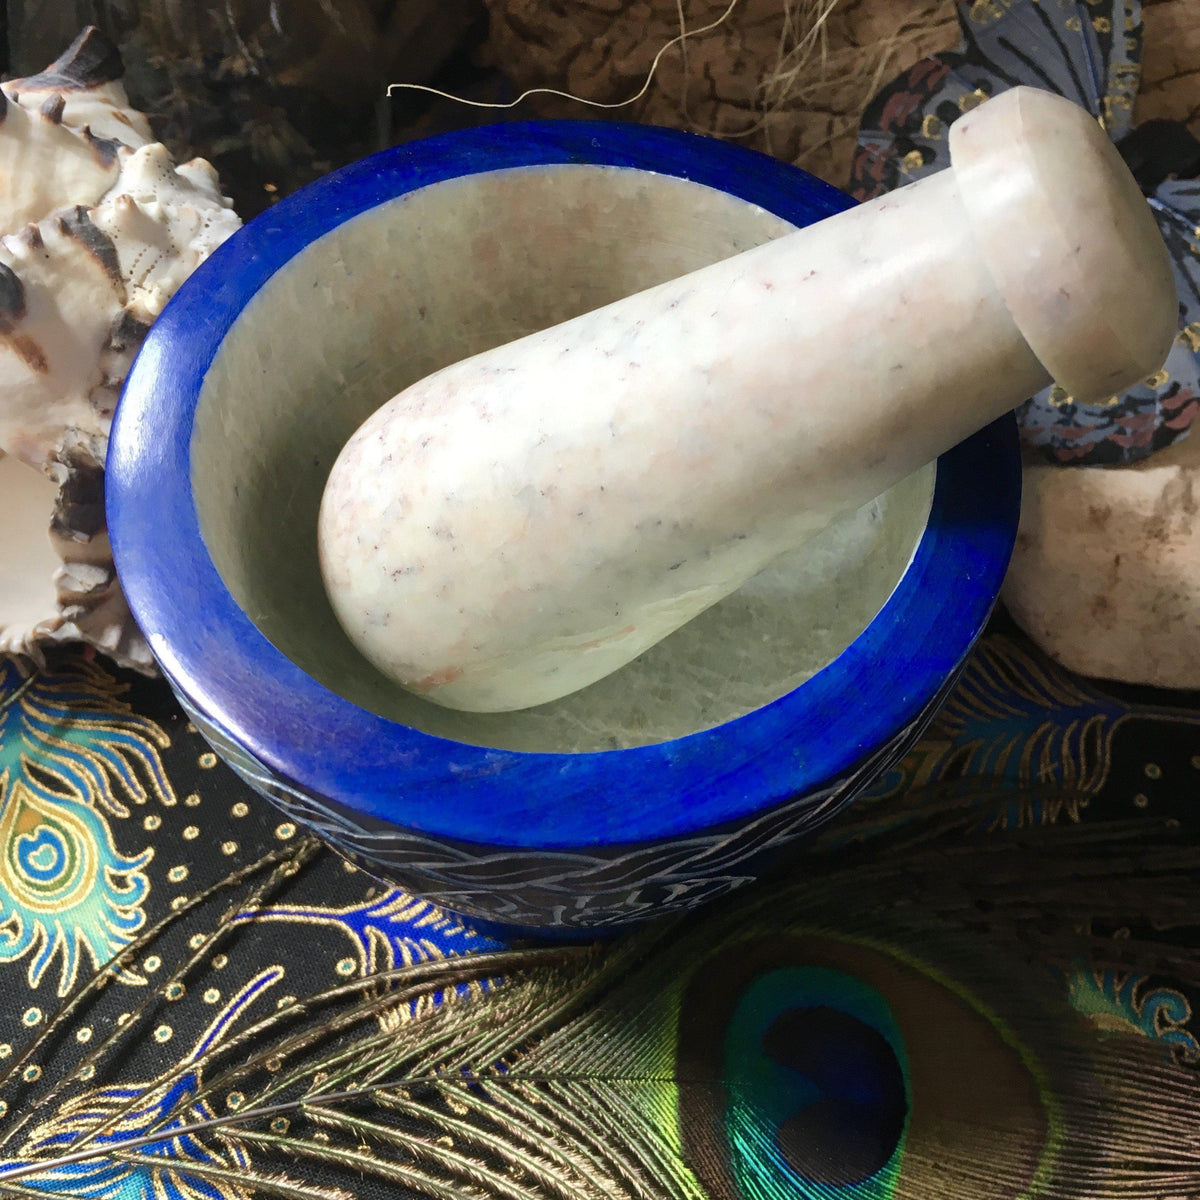 Blue Soapstone Mortar and Pestle, altar supply - SugarMuses